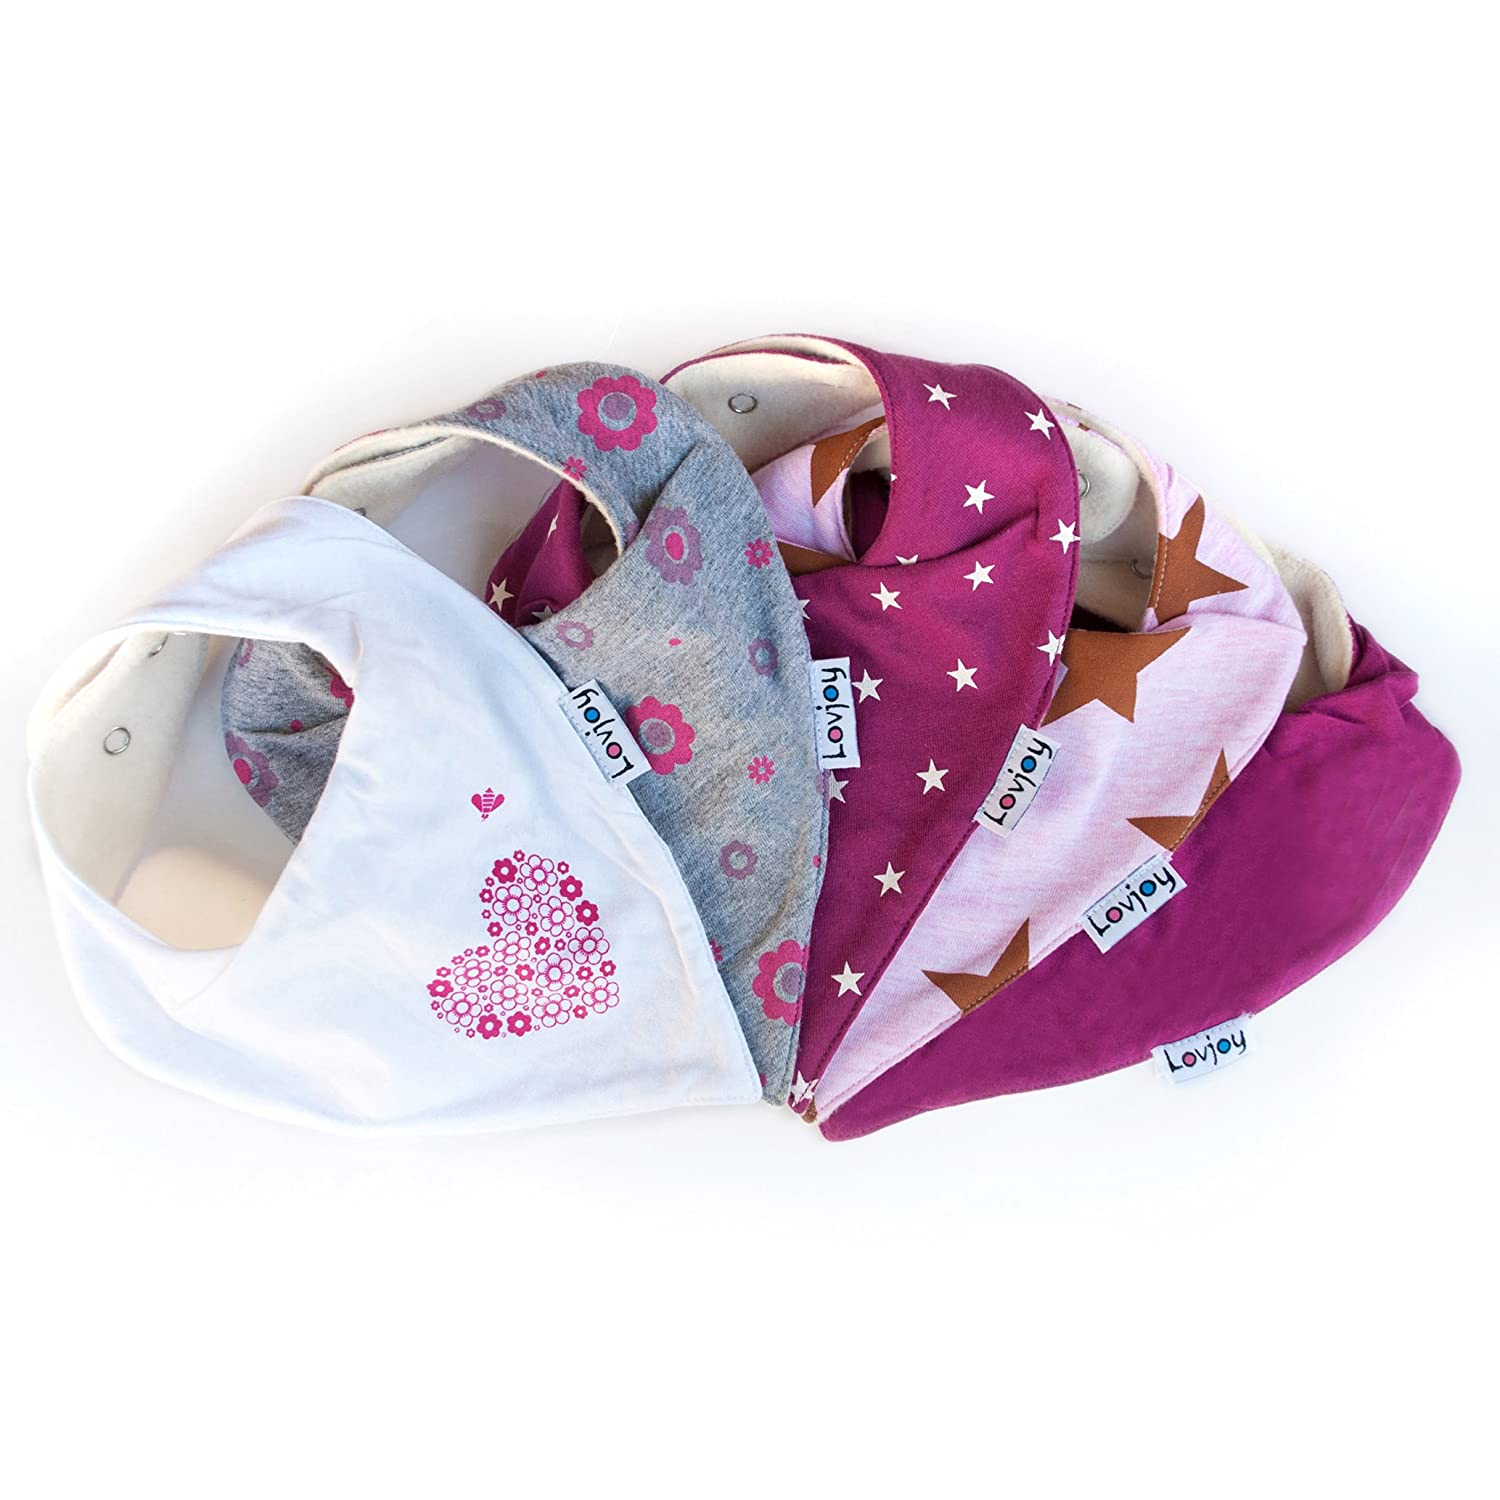 Lovjoy Bandana Dribble bibs, Super Absorbent & Soft for Teething Babies , Fits Newborn to 3 years, Adjustable Snaps, Best Baby Gift. 5 PACK (PRETTY PINKS)